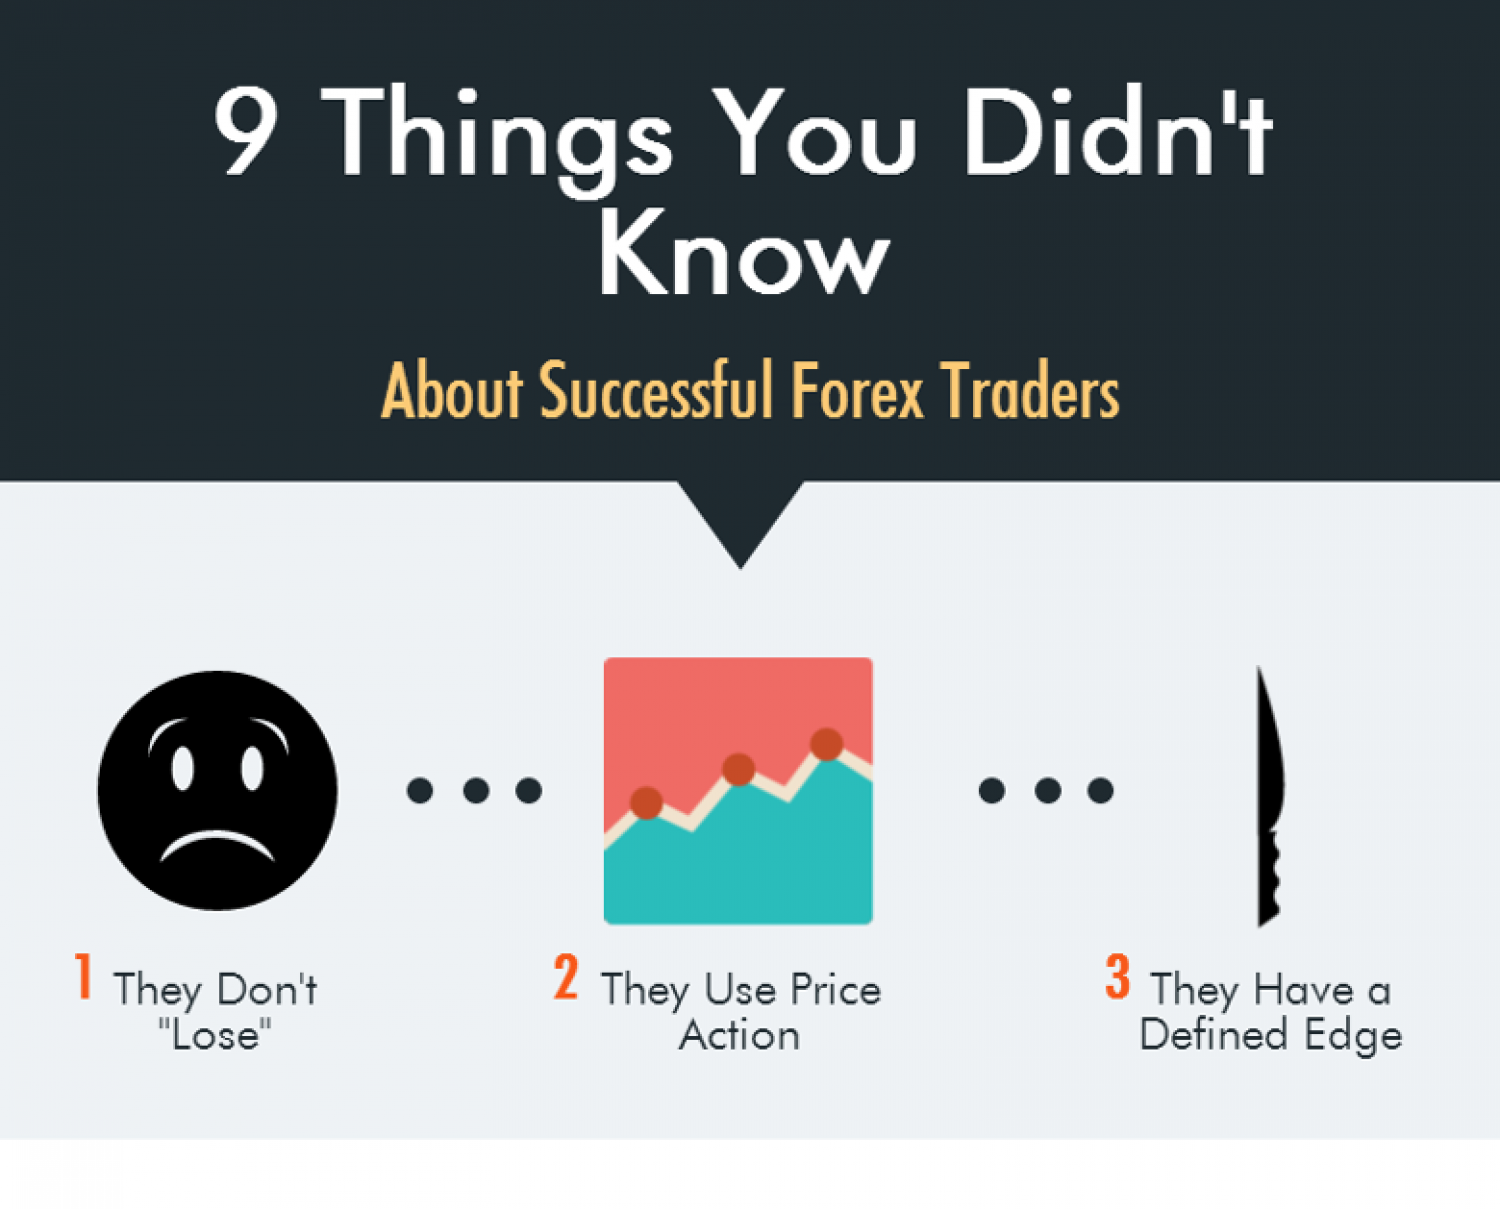 Forex traders success rate